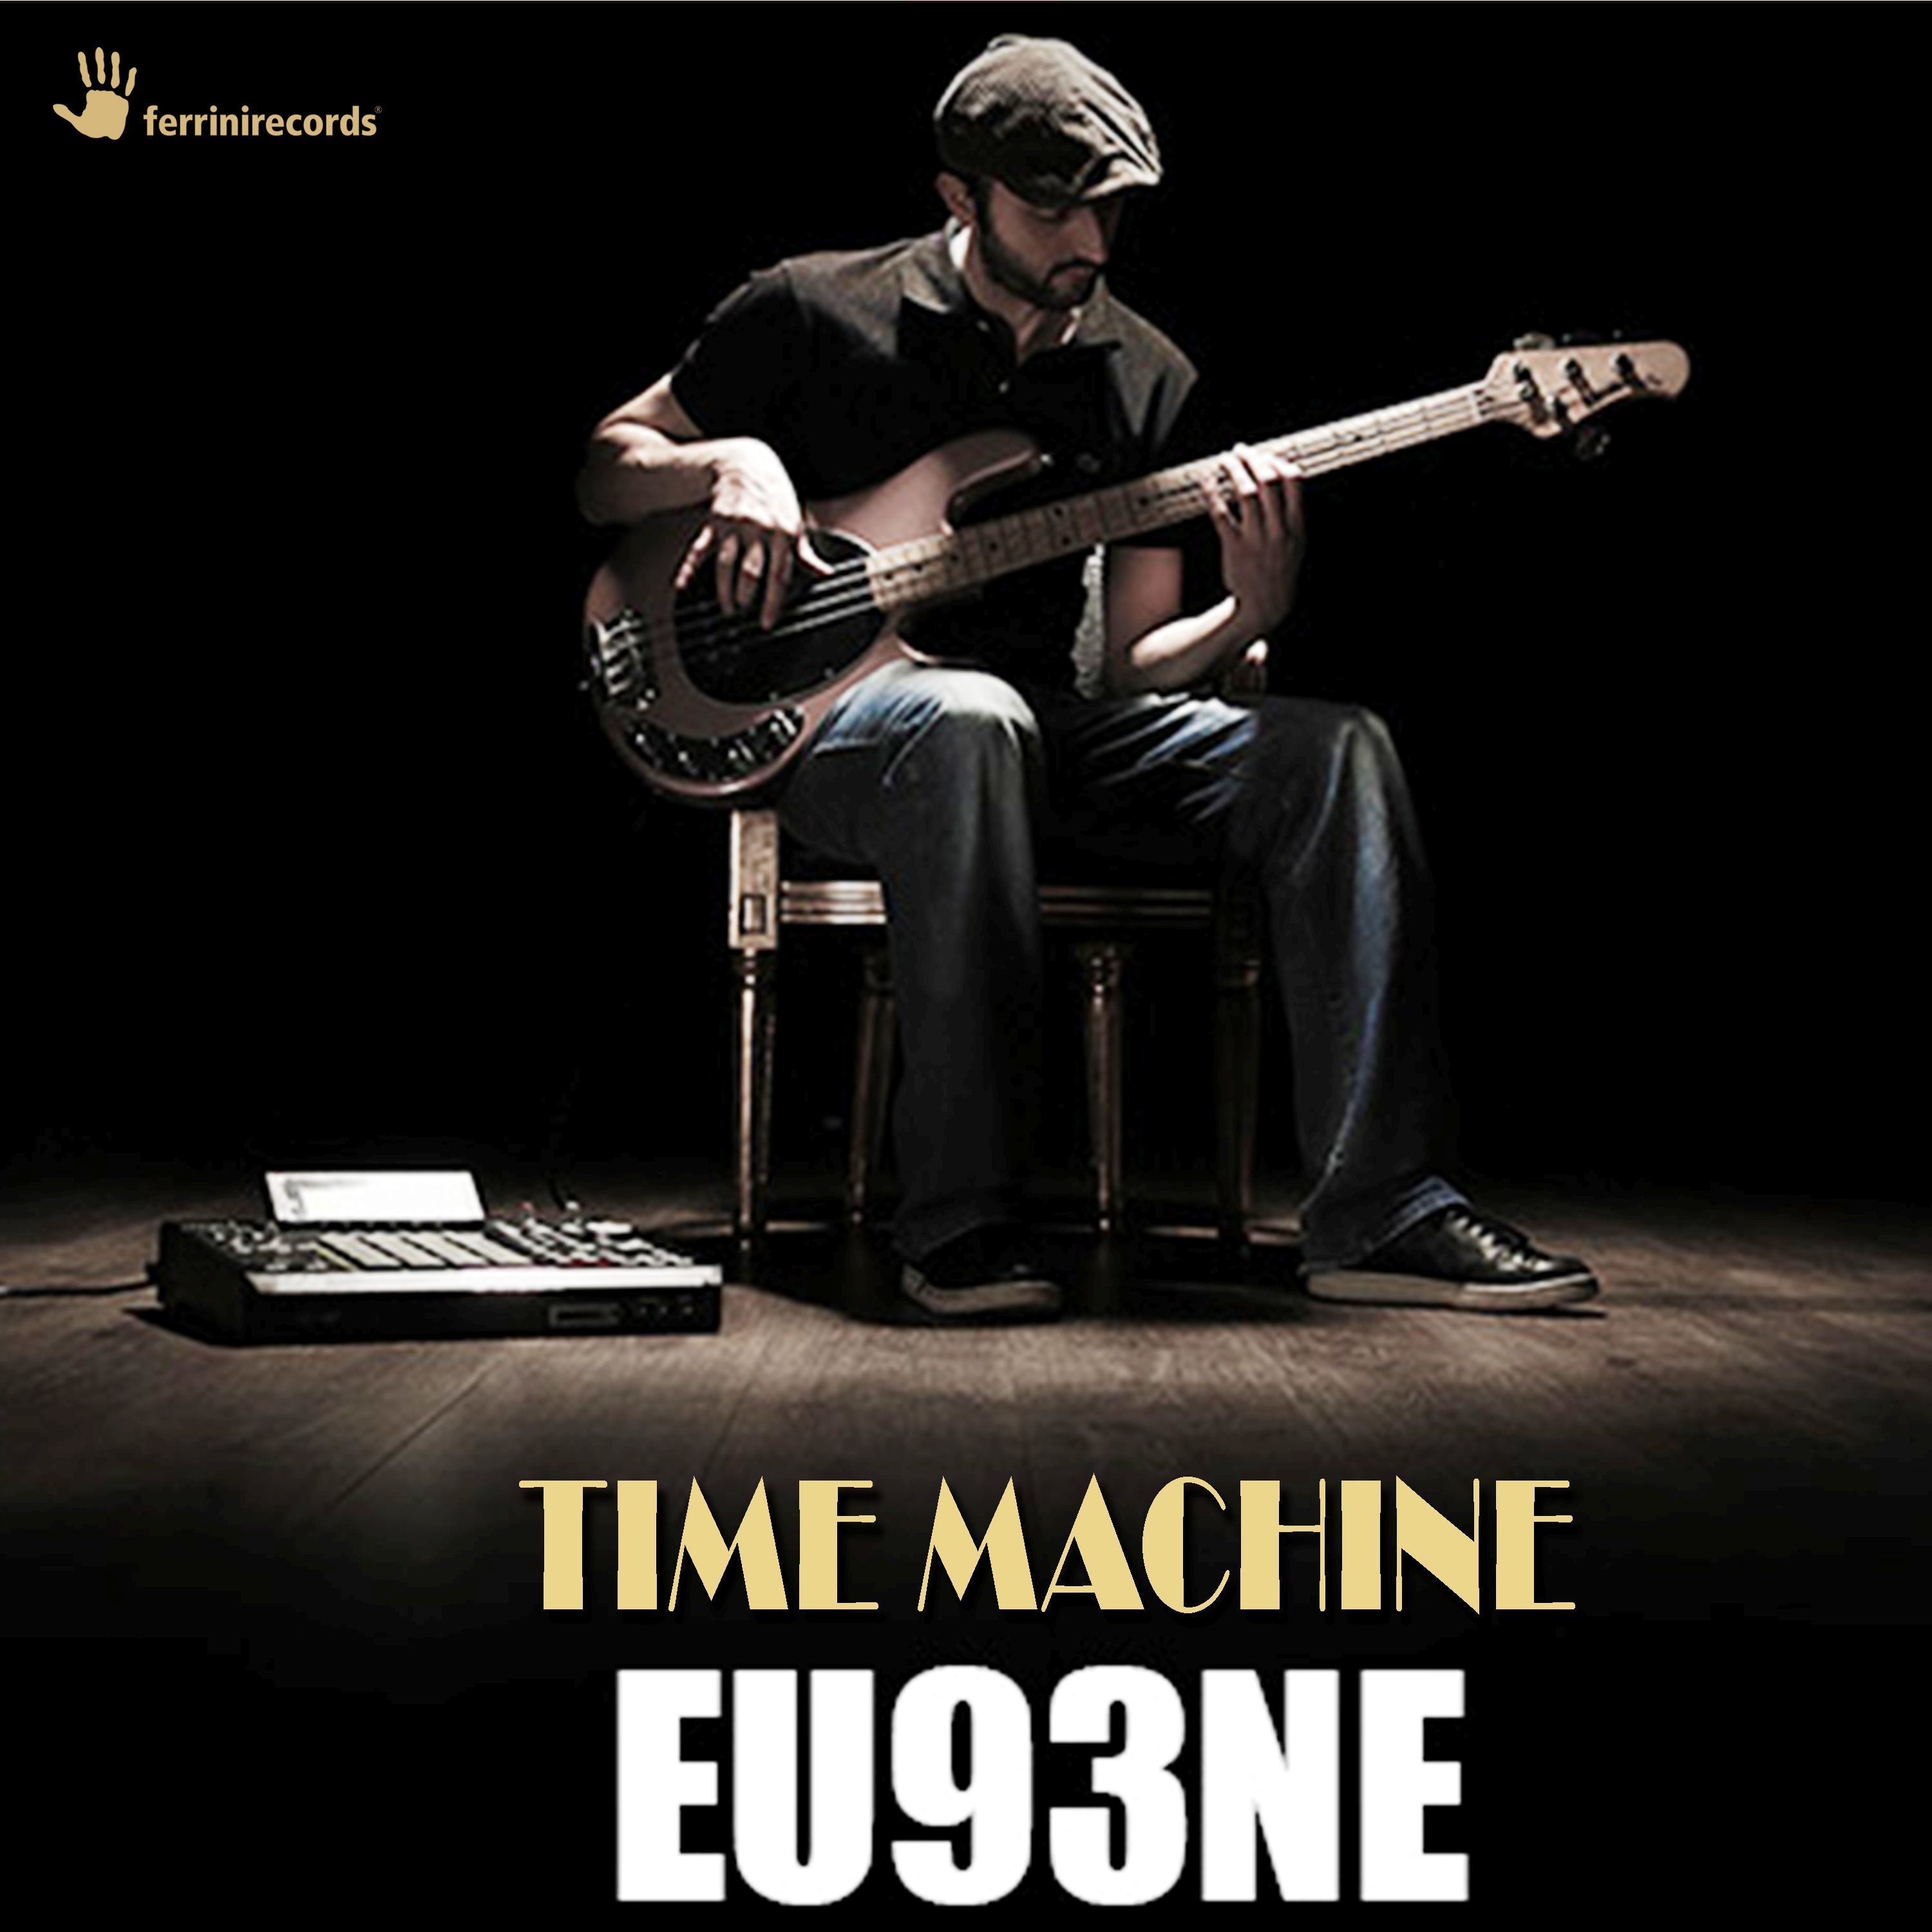 EU93NE-Time Machine